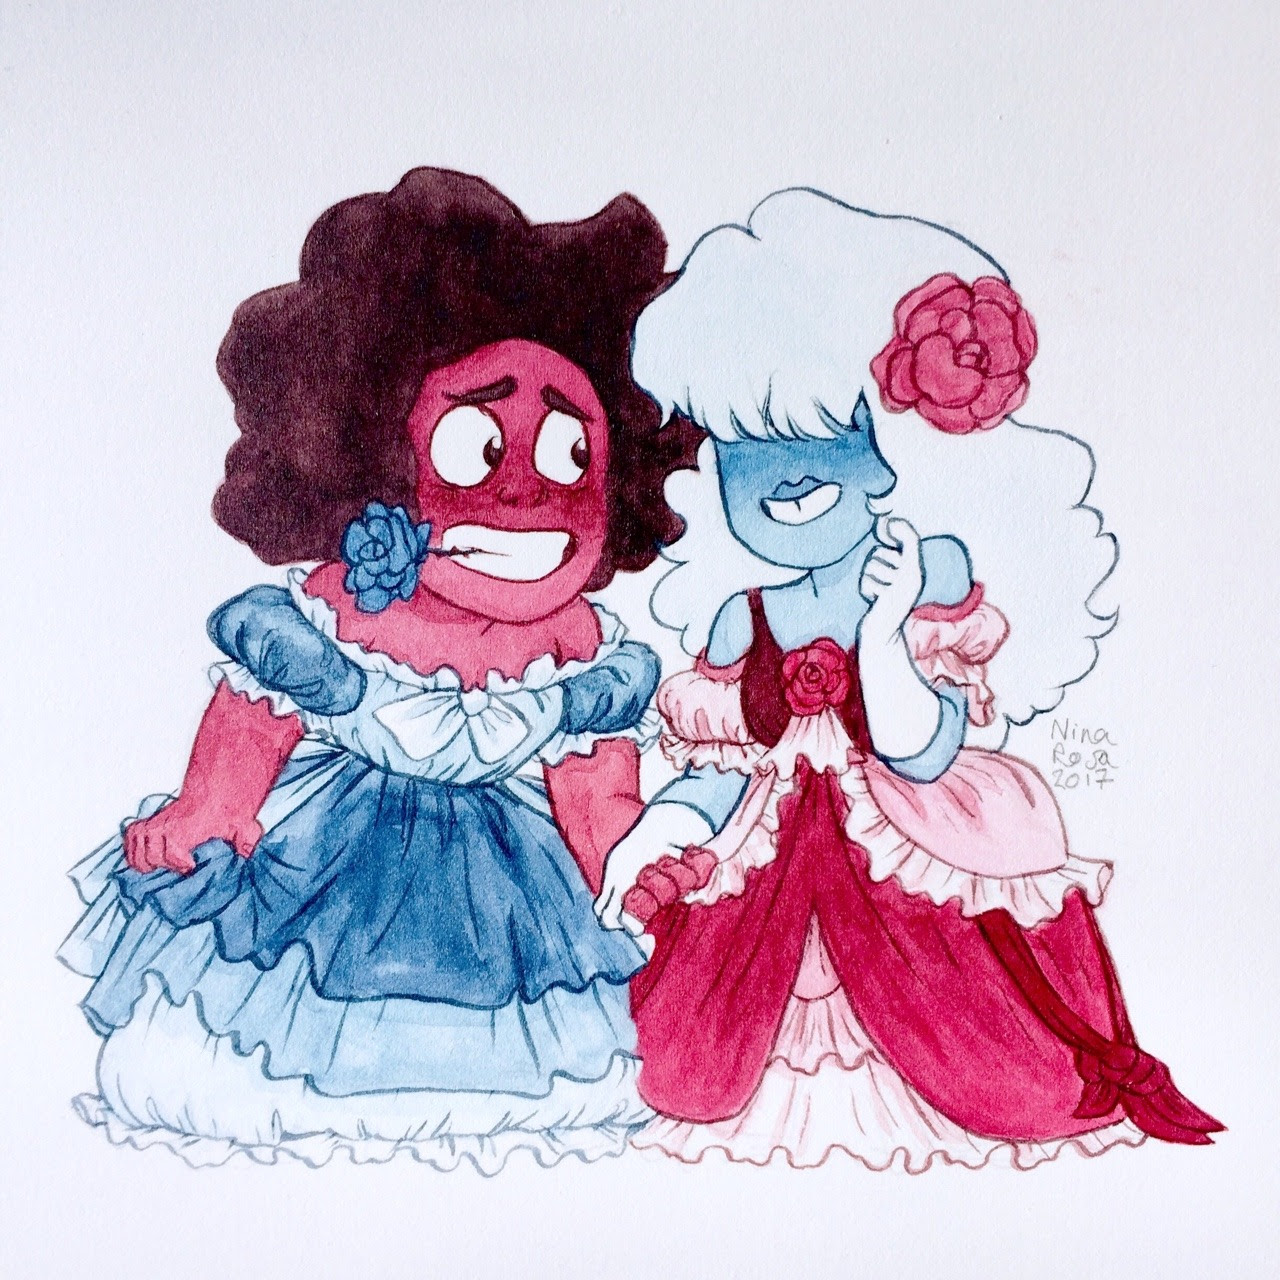 They thought about each other choosing their dresse's color (Based on a drawing Rebecca Sugar did!!)